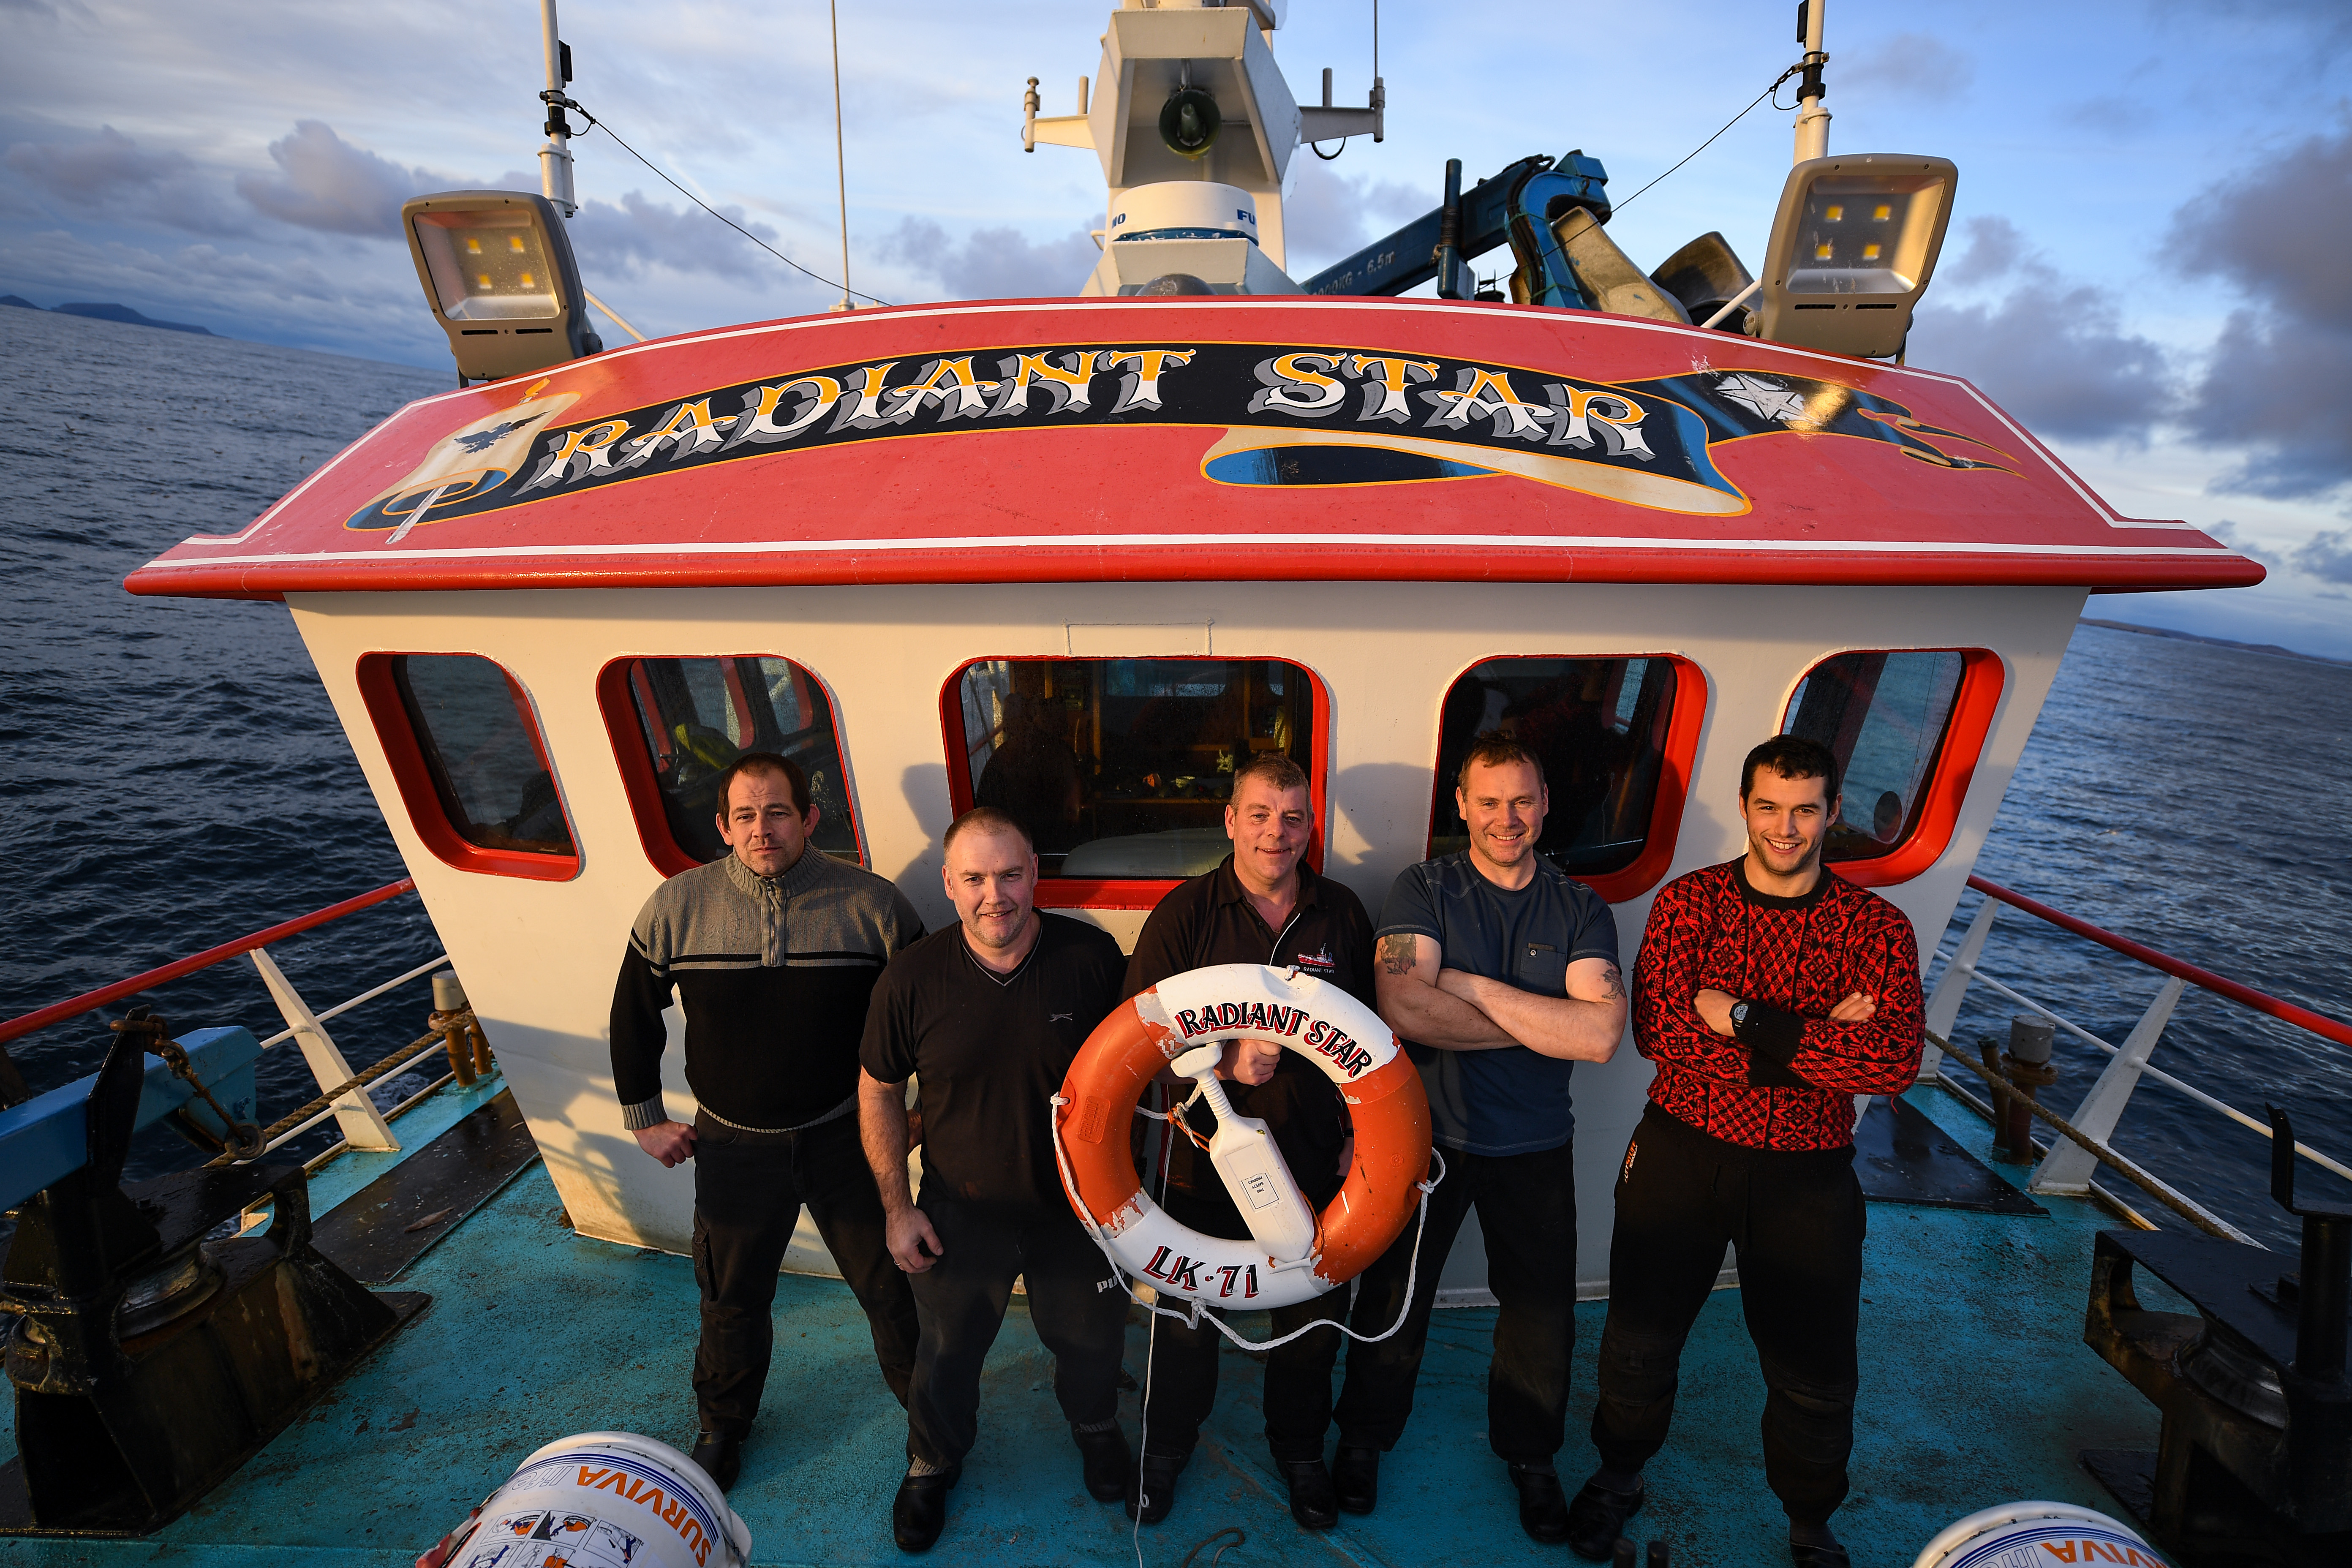 Jimmy Reid,Ian Couper, Victor Laurenson,Victor Duncan and Marven Inkster crew members of the Radiant Star, stand on deck during a days fishing in the North Sea on December 5, 2018 in Shetland, Scotland.